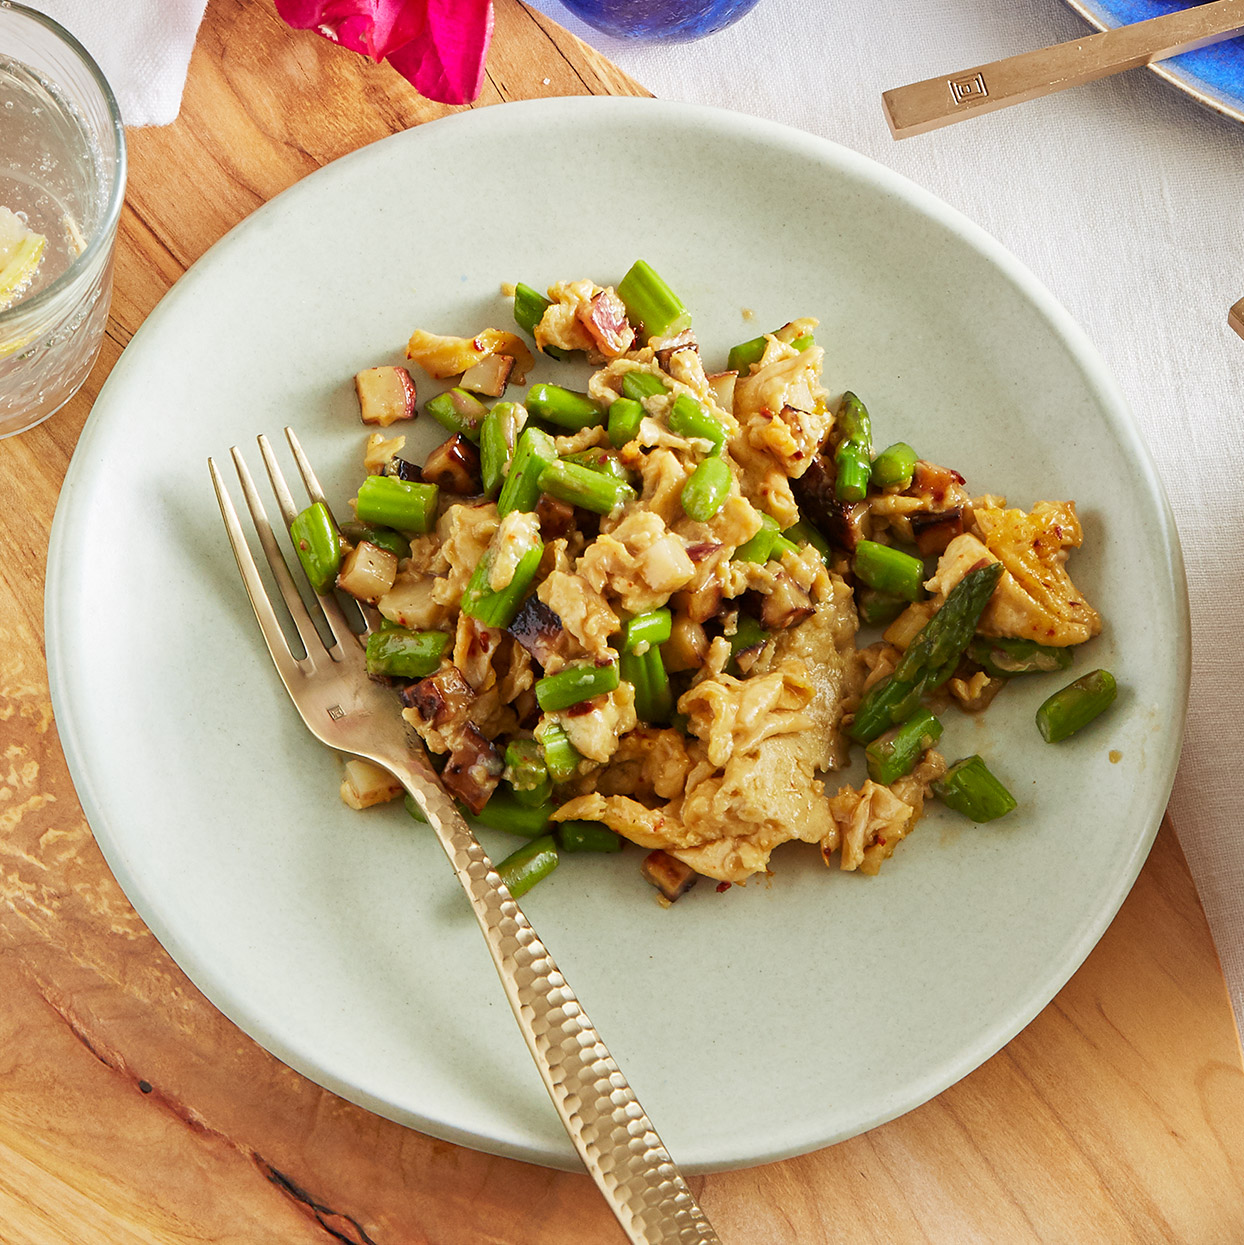 Wild Asparagus with Scrambled Eggs